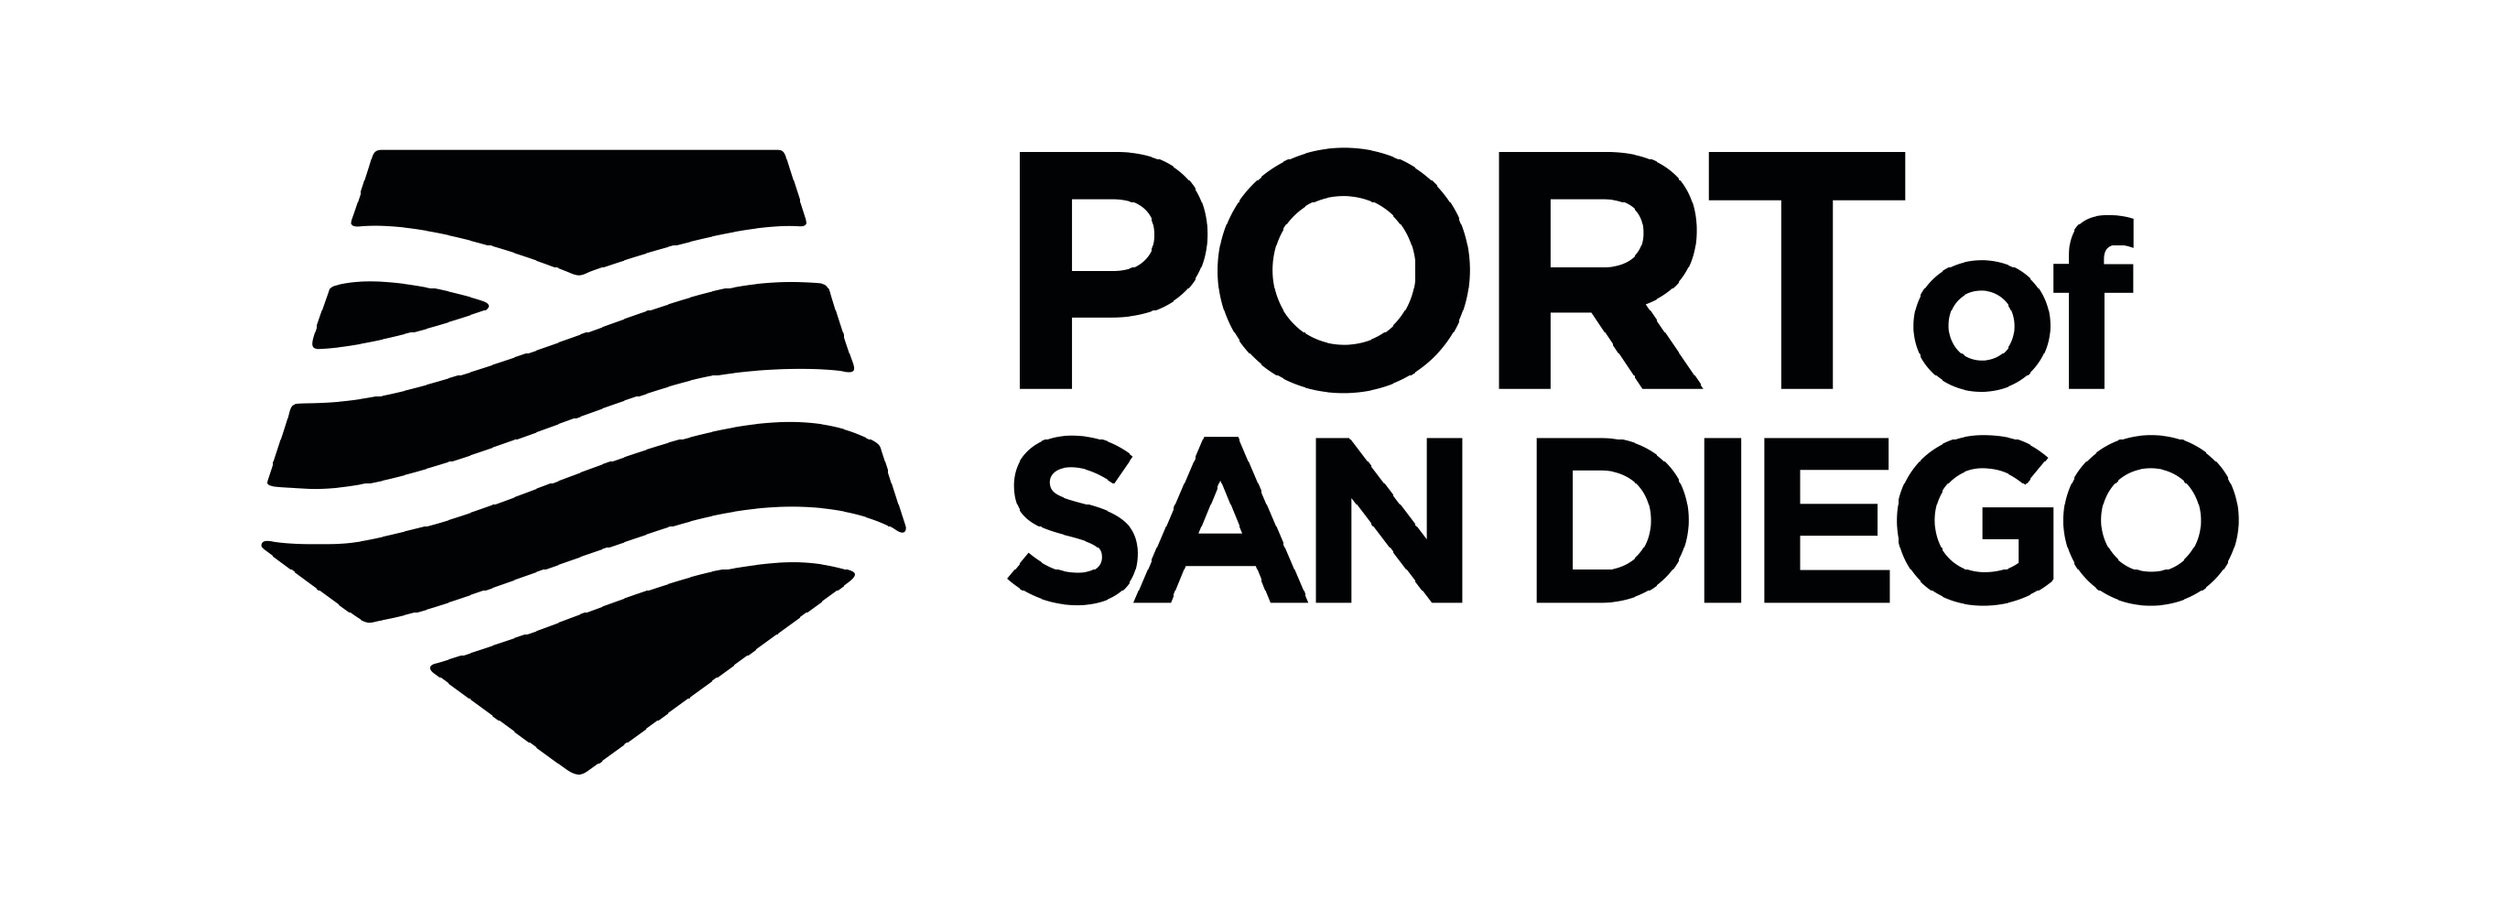 port-of-sd-logo.jpg